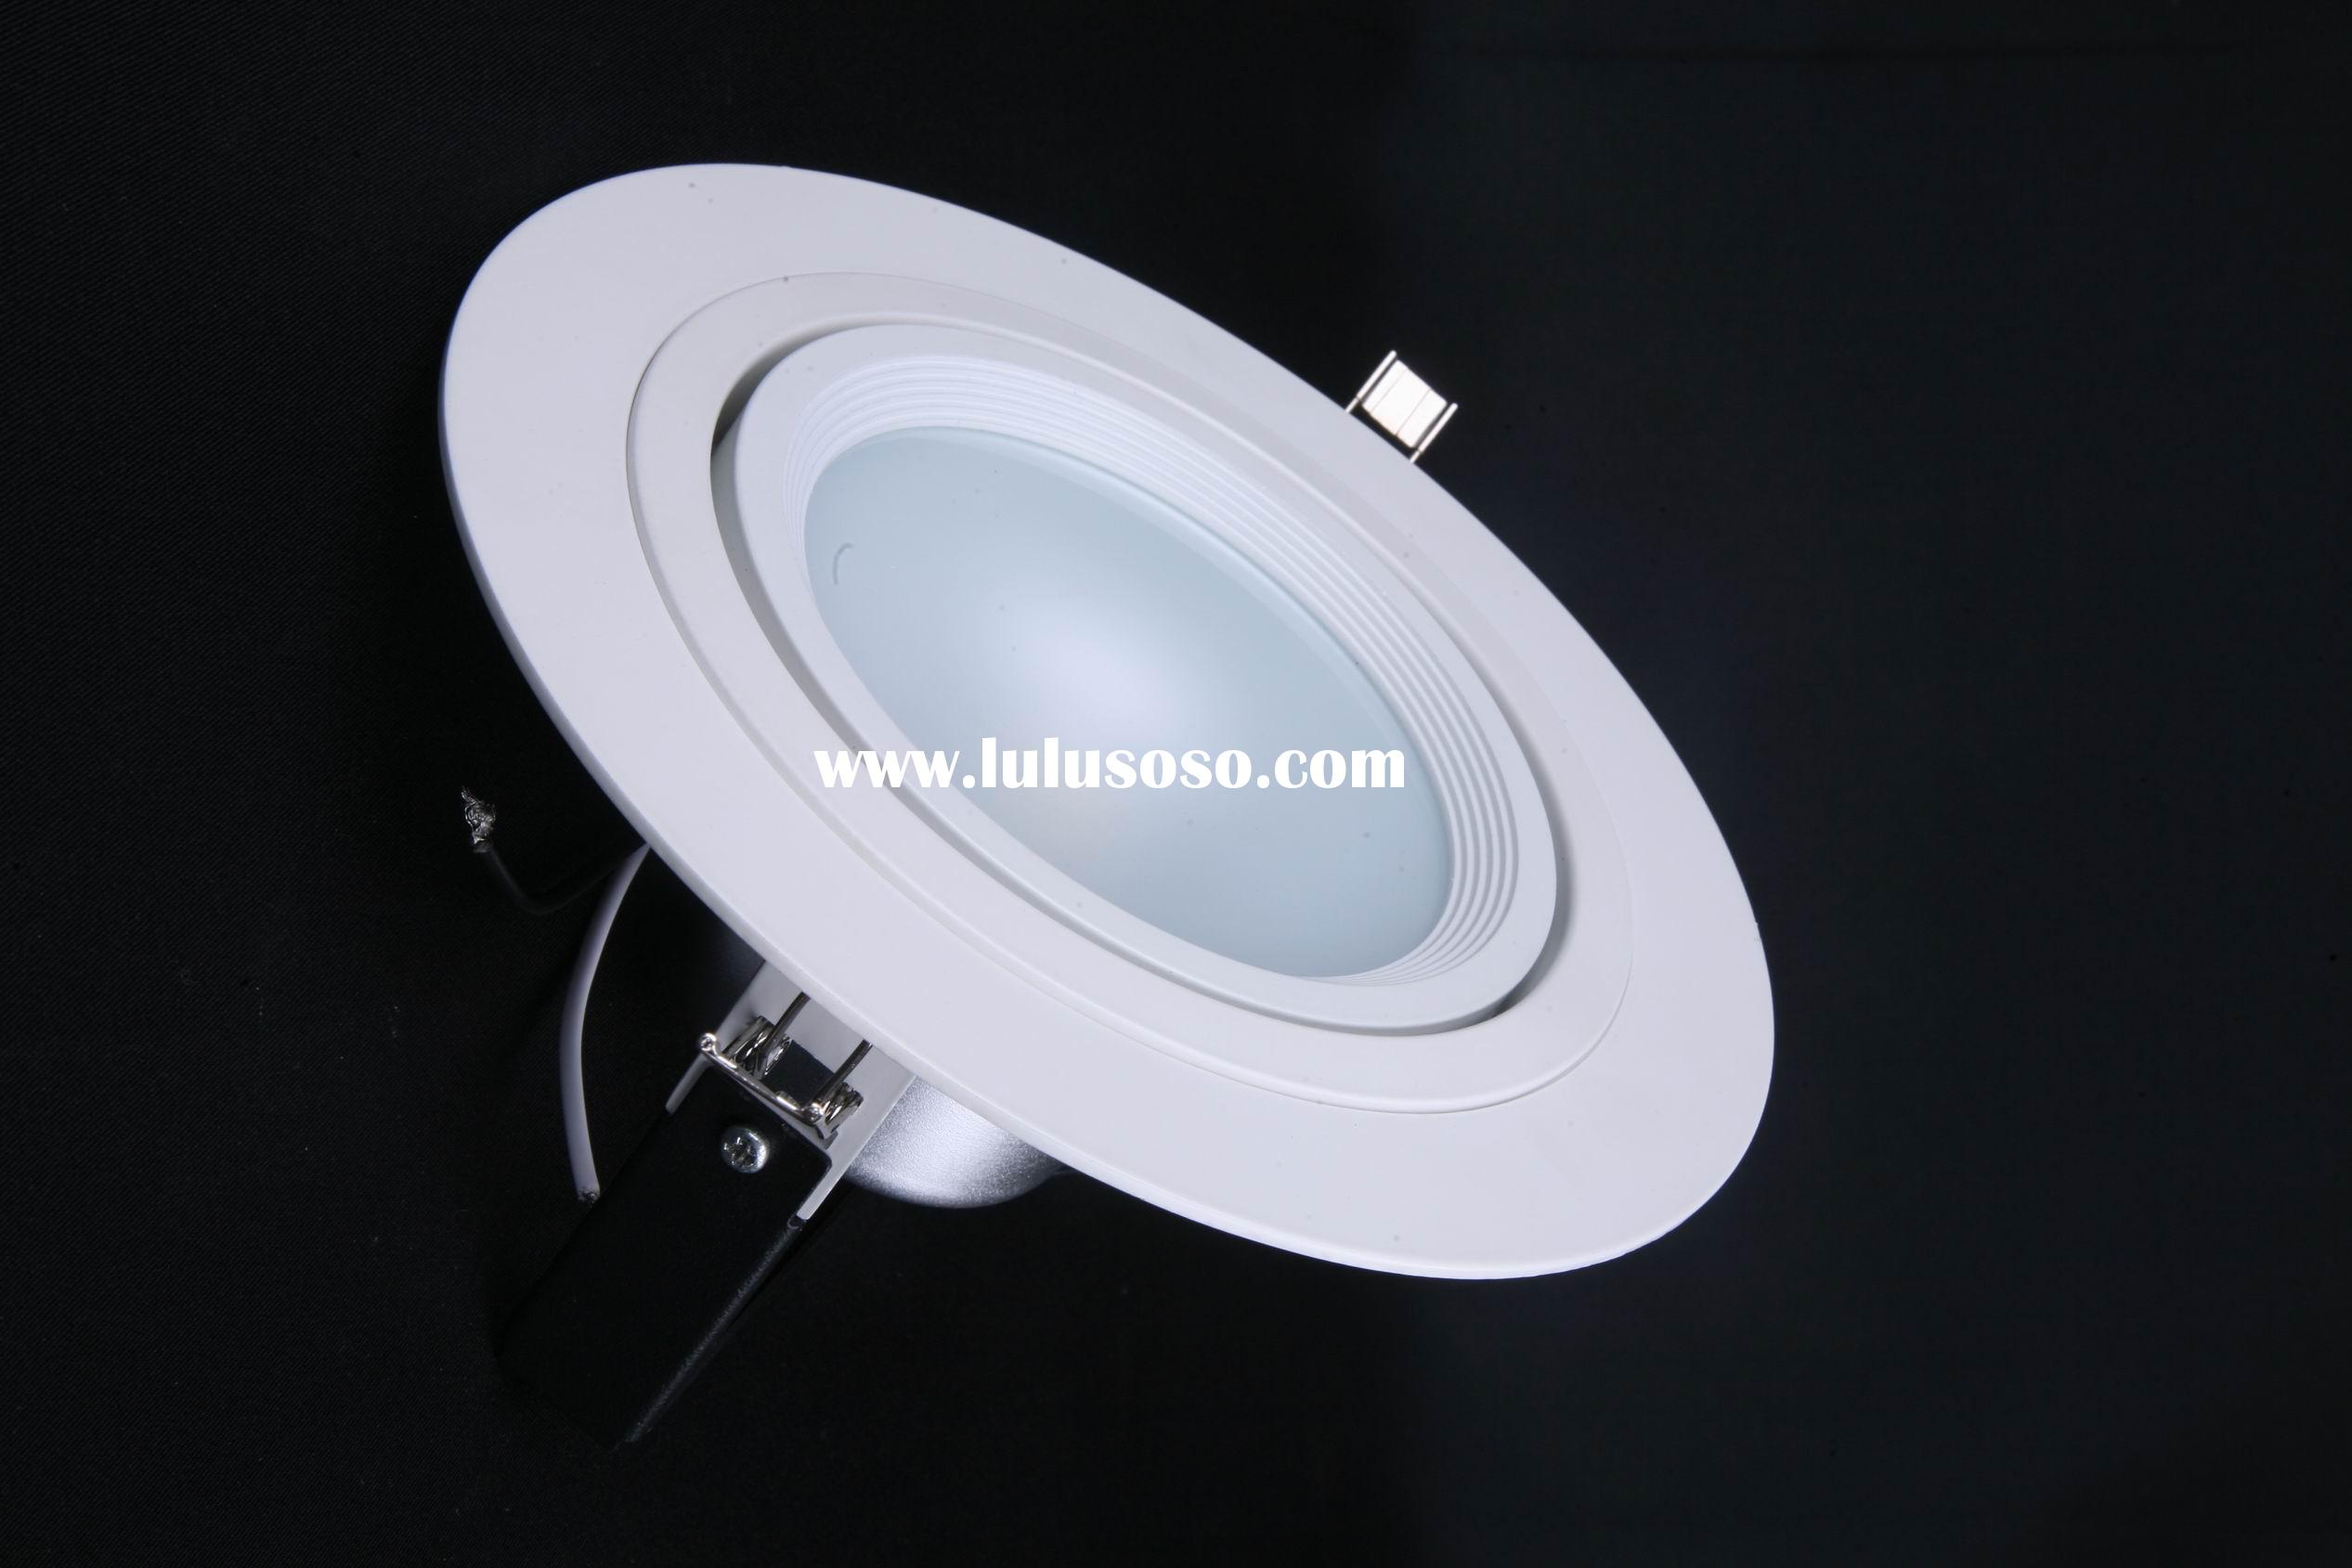 1x15 W dimmable high power warm white led recessed downlight